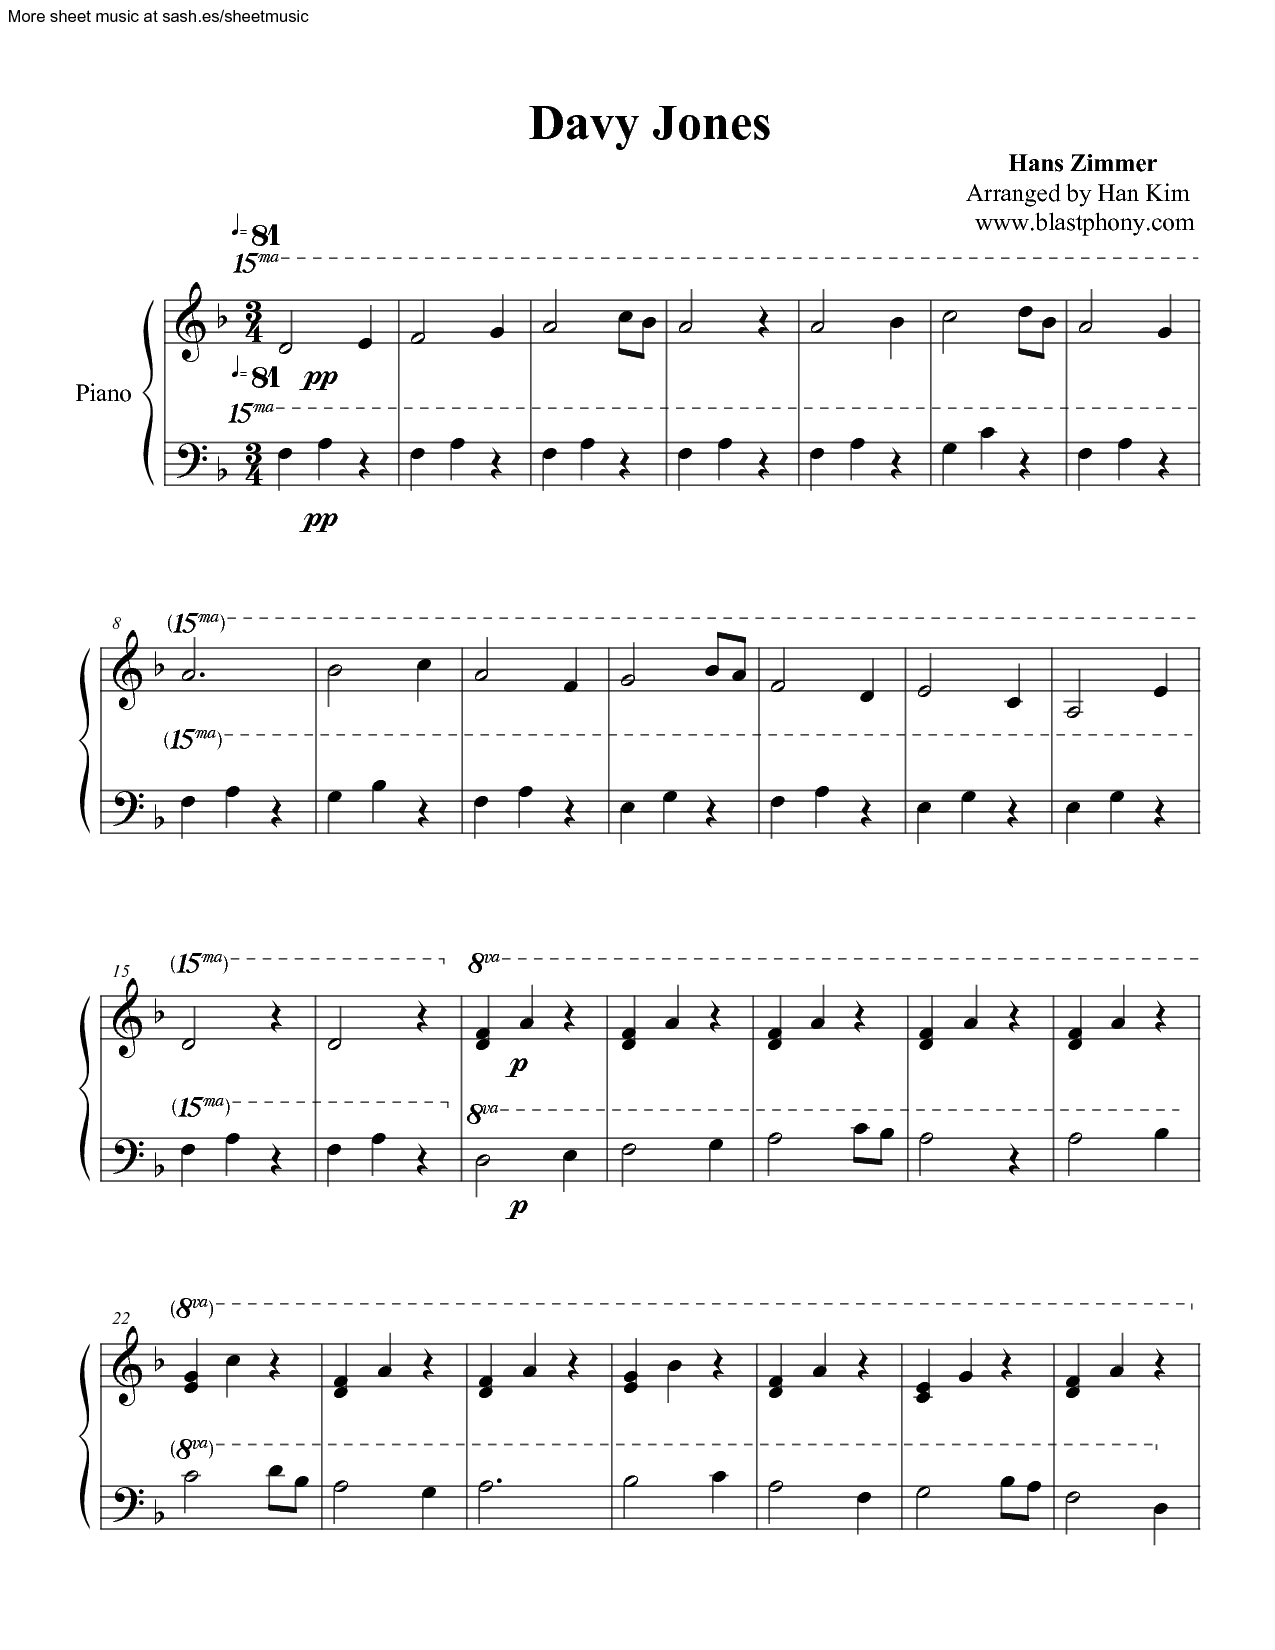 Pirates Of The Caribbean - Davy Jones sheet music | Davy